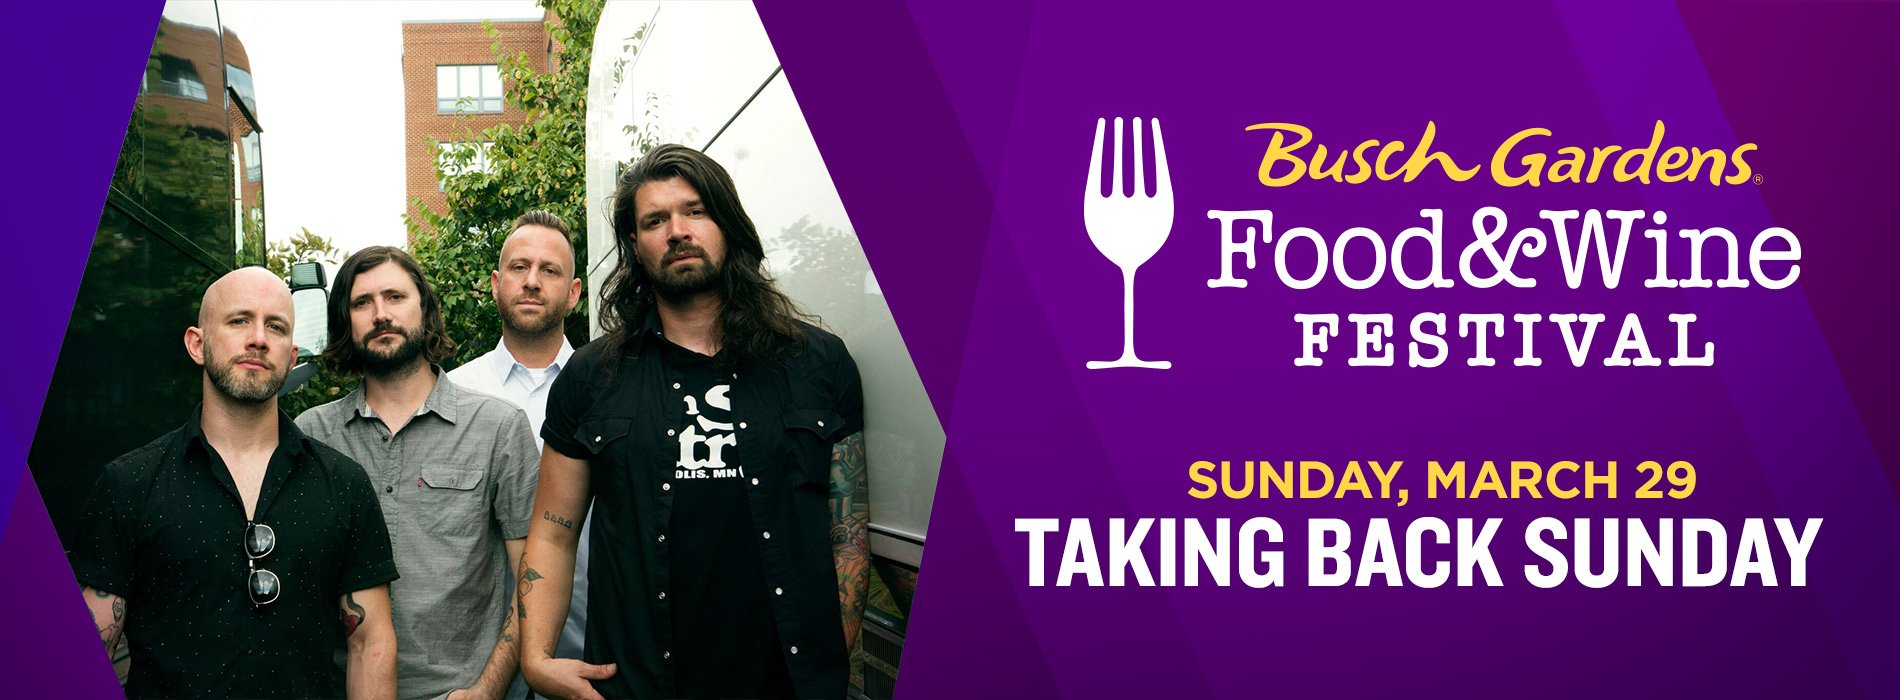 Taking Back Sunday at Busch Gardens Tampa Bay on Sunday, March 29 for the Food and Wine Festival